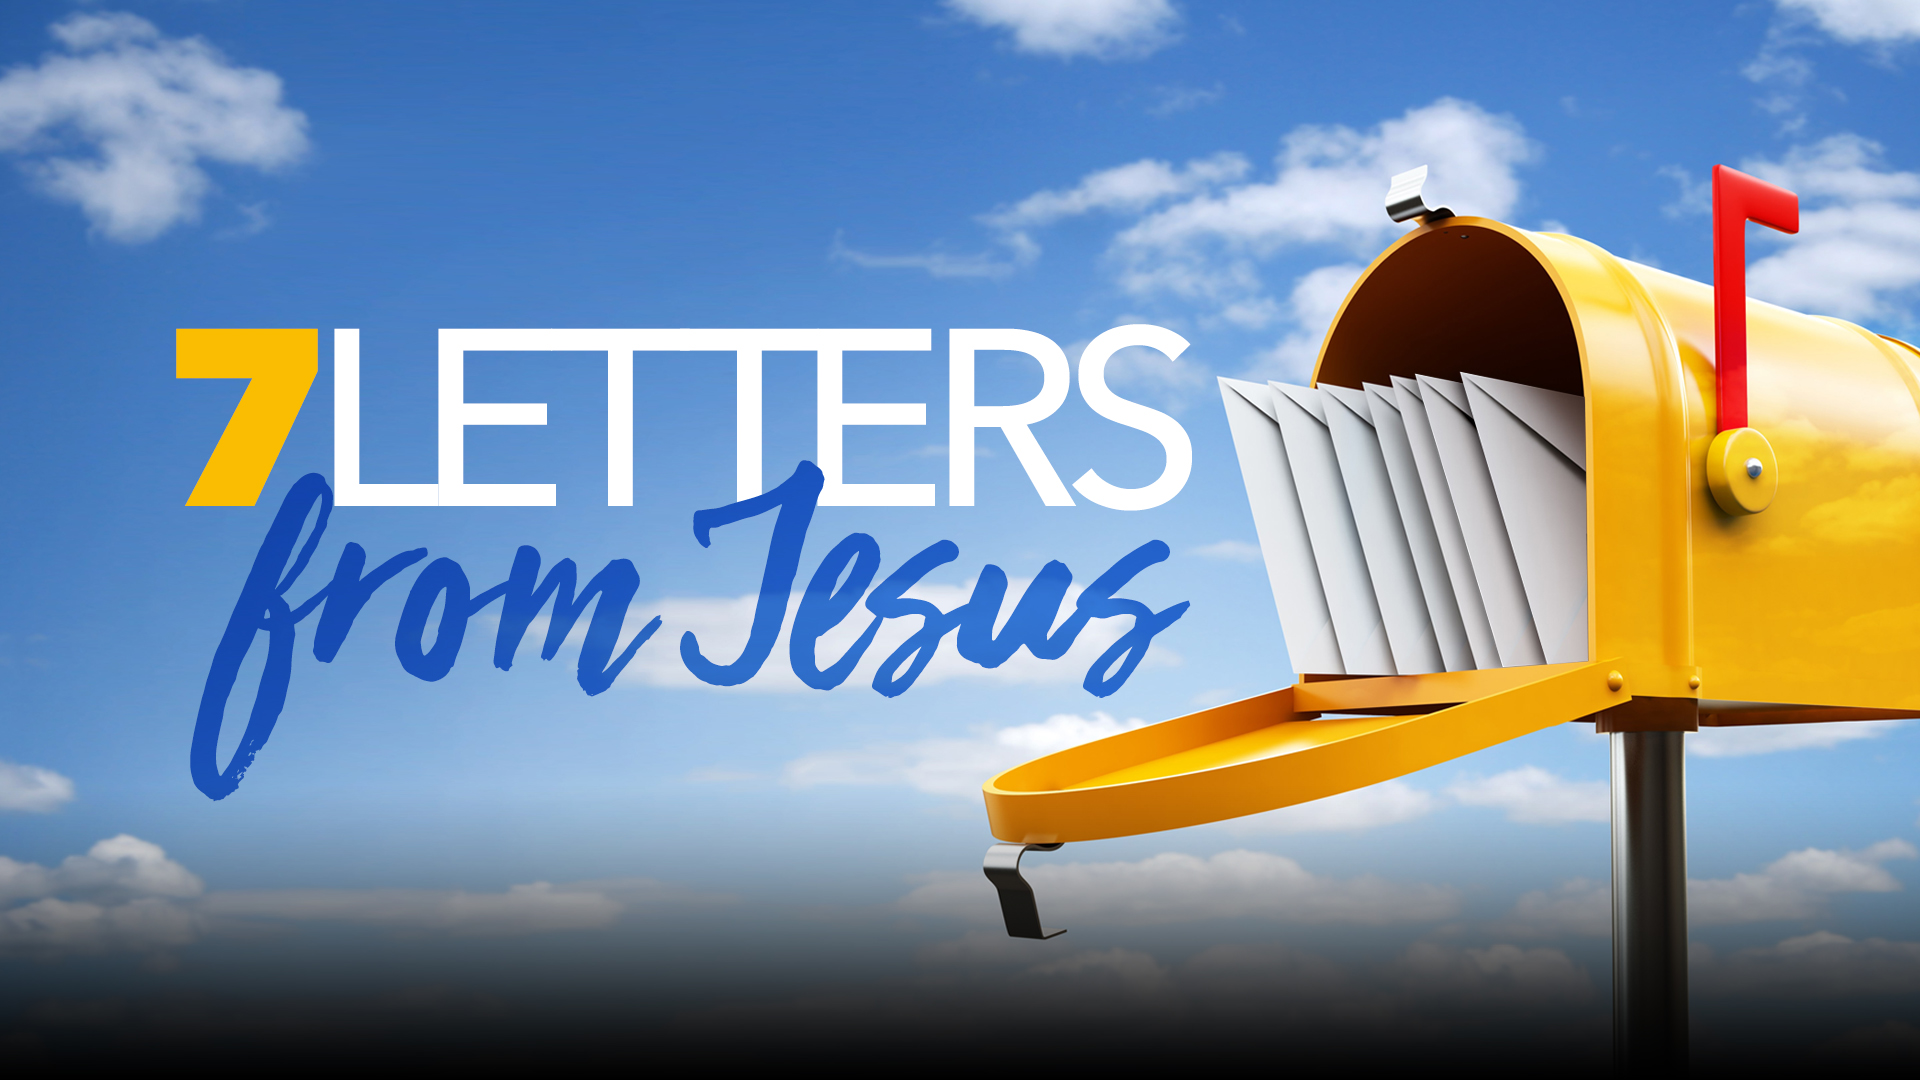 7 Letters From Jesus - Philadelphia